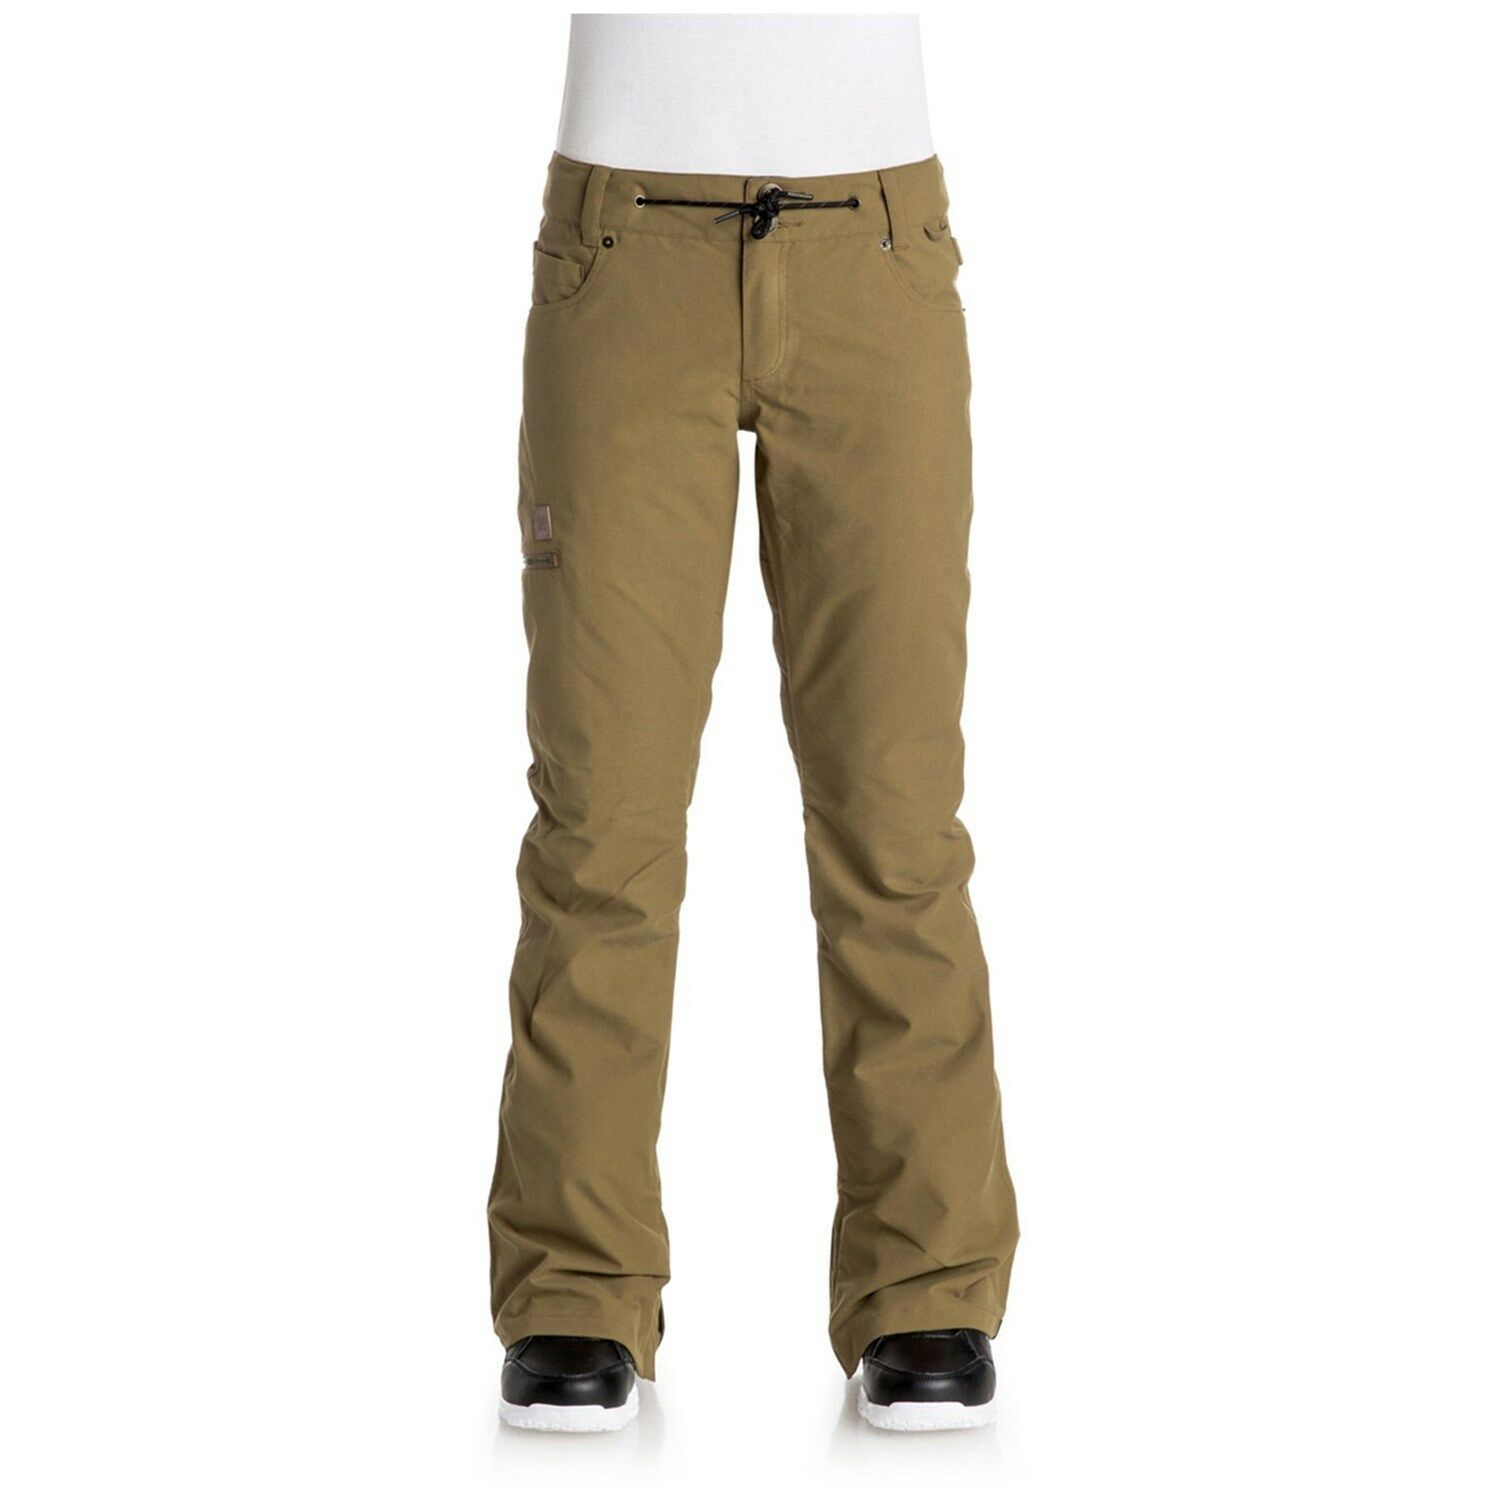 2017 NWT WOMENS DC VIVA SNOW PANTS  dull gold tailored fit 15k waterproof